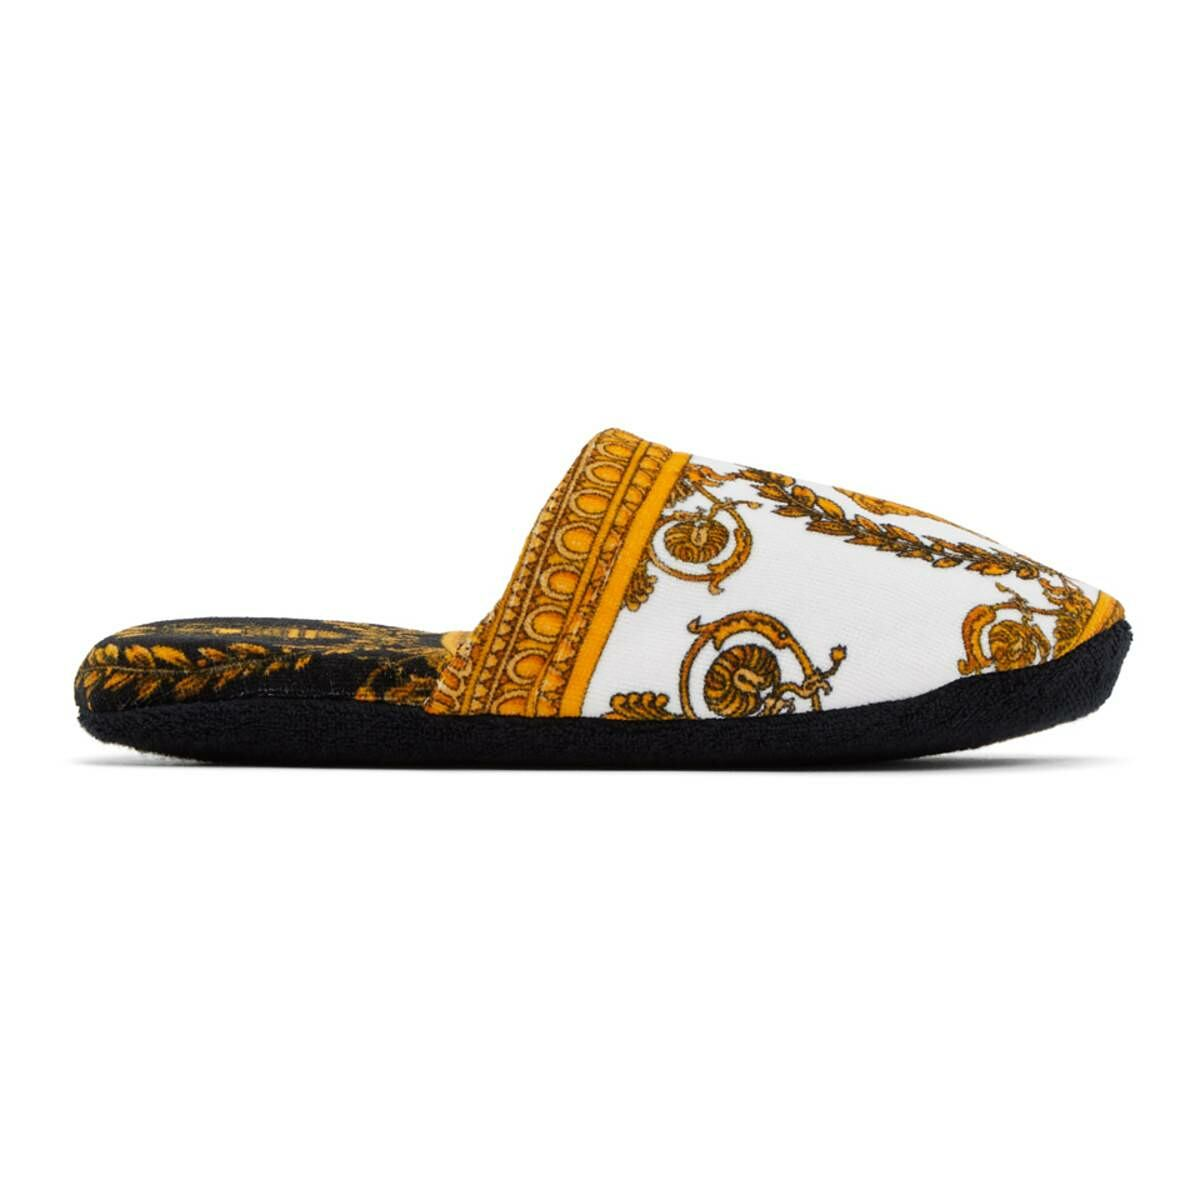 Versace White Baroque Slippers Ssense USA MEN Men SHOES Mens LOAFERS